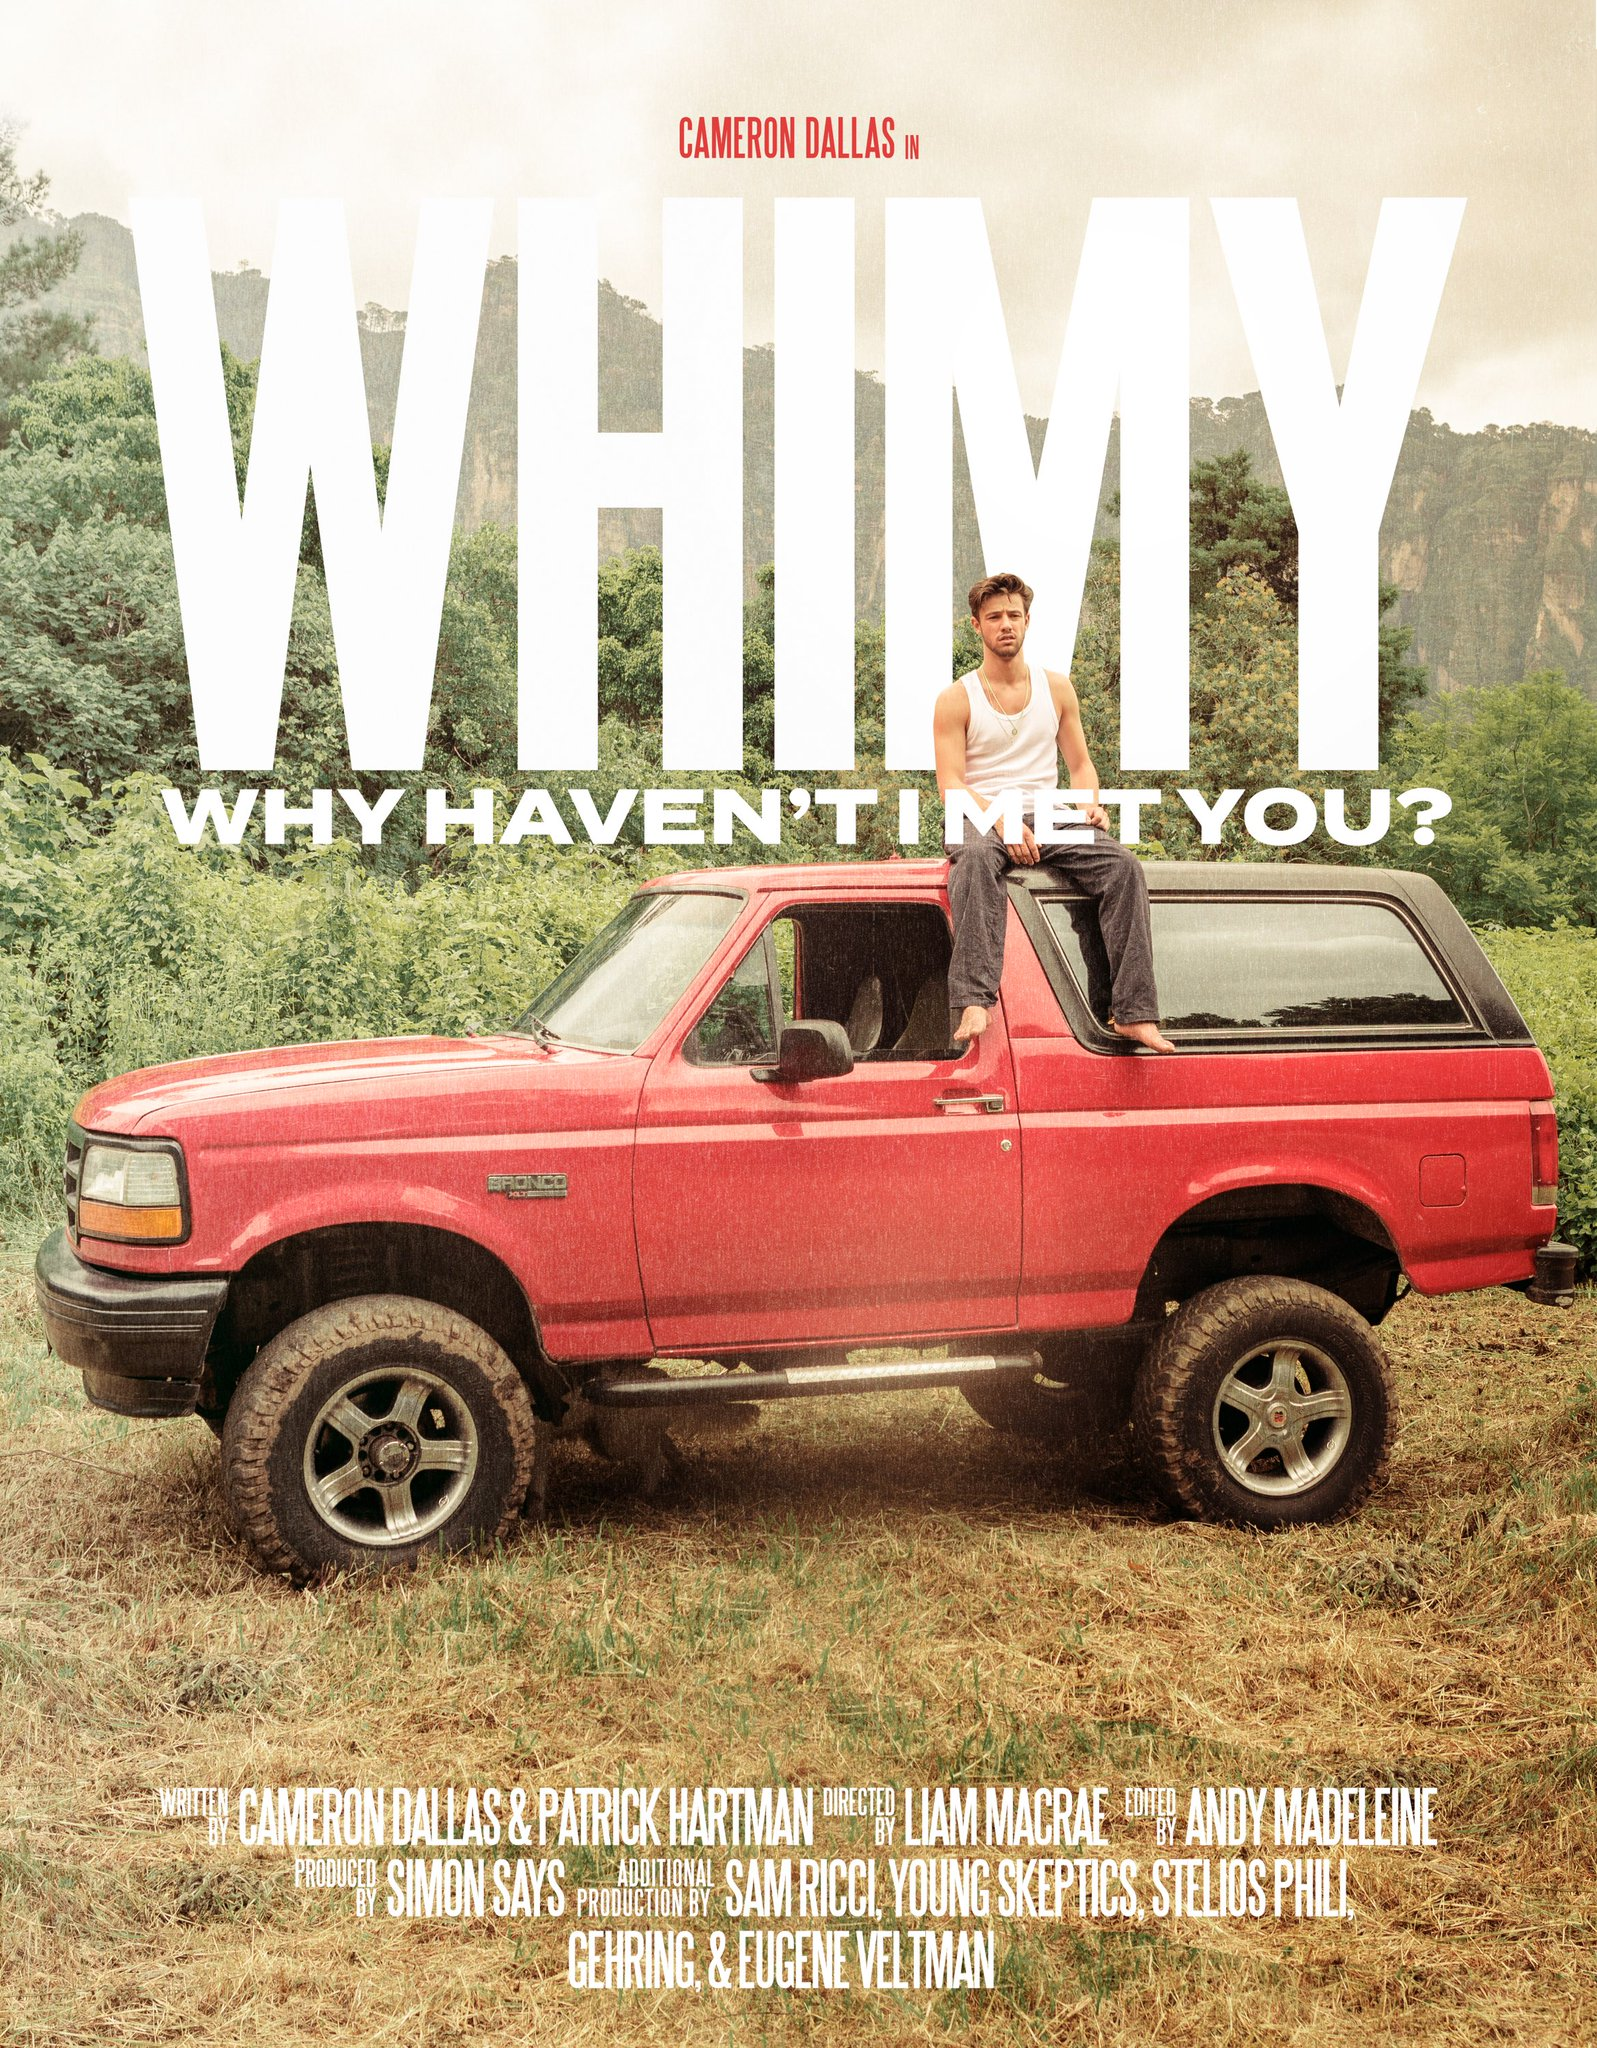 WHIMY the film. Who wants to see the premiere? Let me know where I should meet you guys! https://t.co/MVSWKVafz4